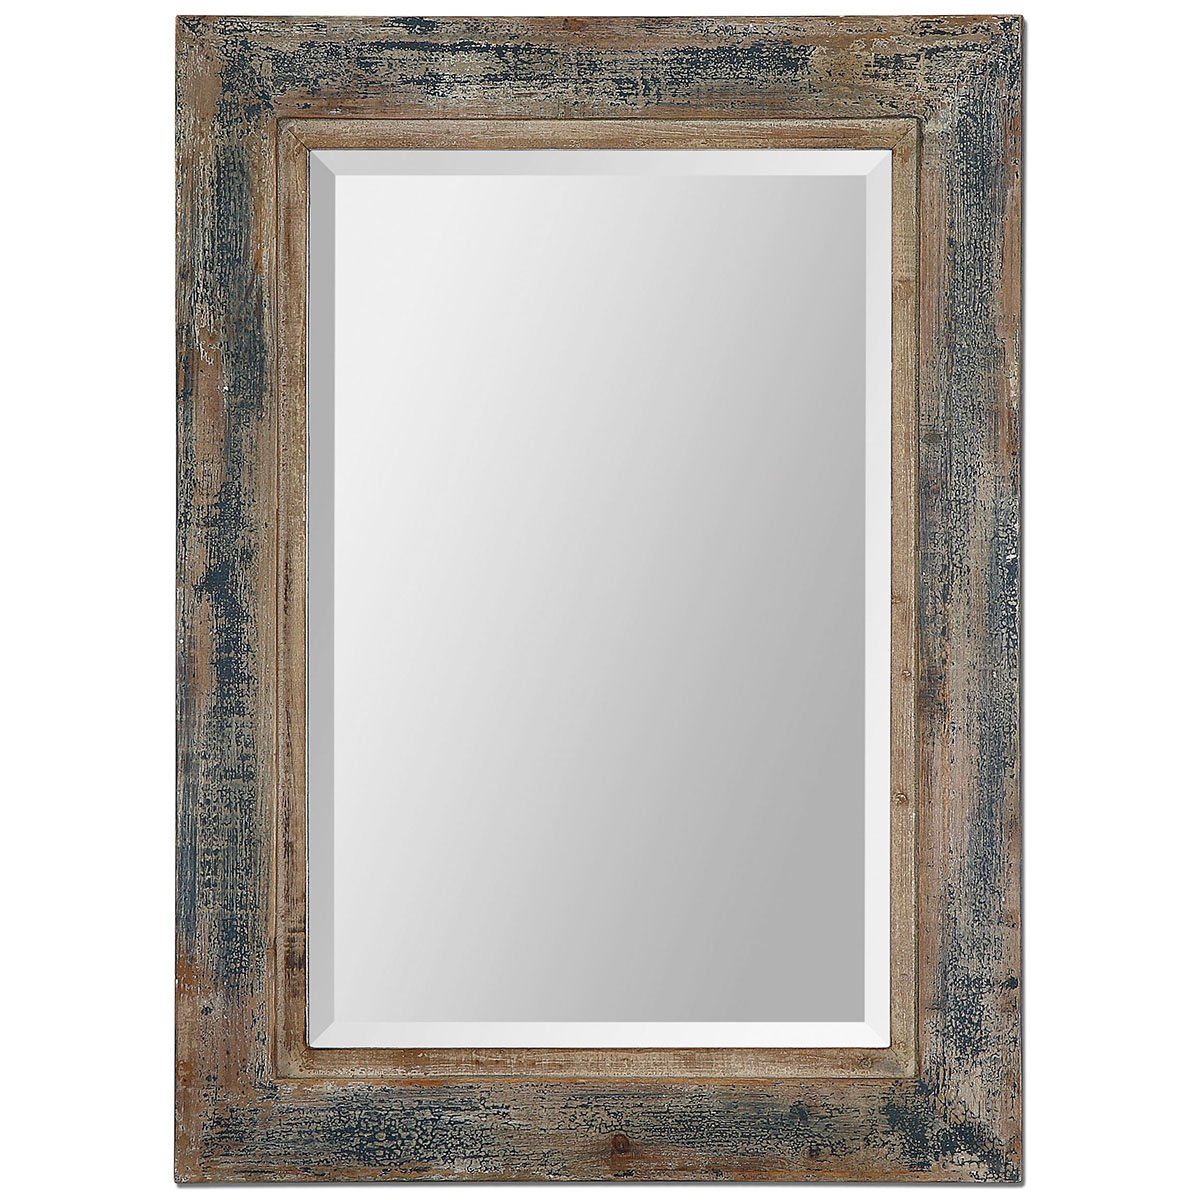 Amazon.com: Uttermost 13829 Bozeman Distressed Mirror, Blue: Home ...